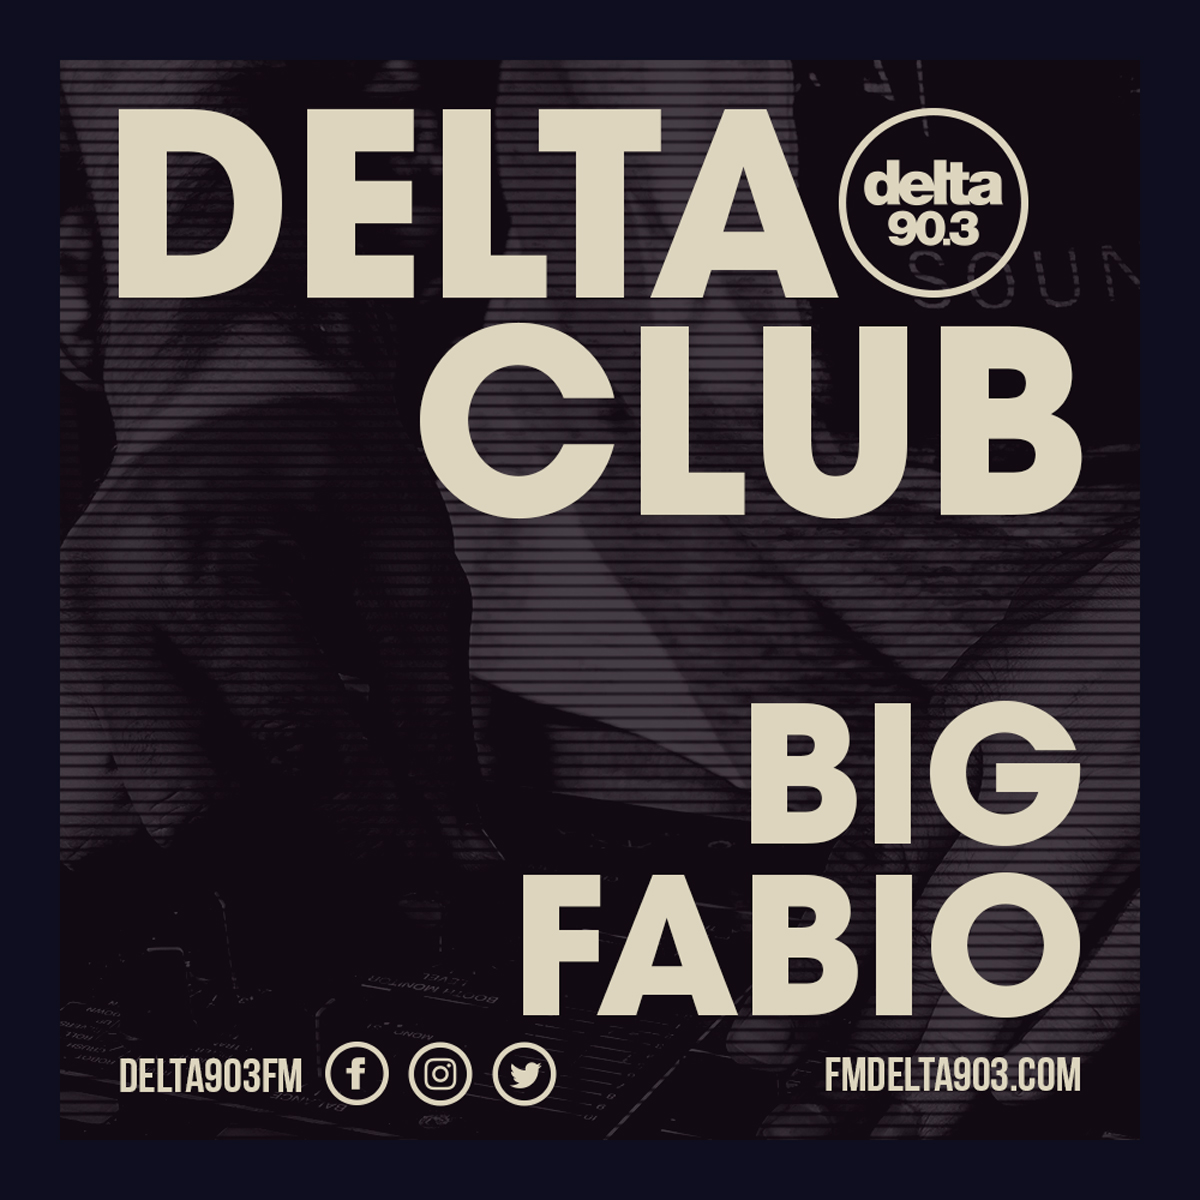 Delta Podcasts - Delta Club presents Big Fabio (27.06.2018)